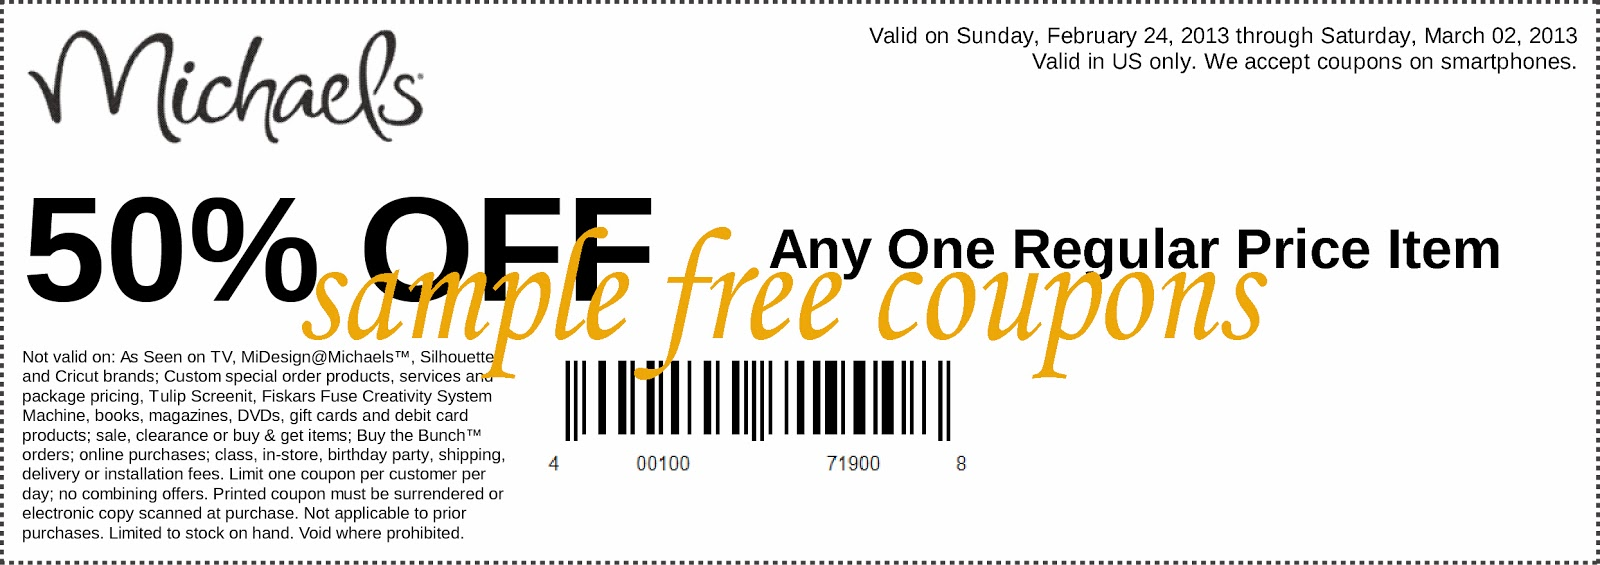 Discount coupon for michaels